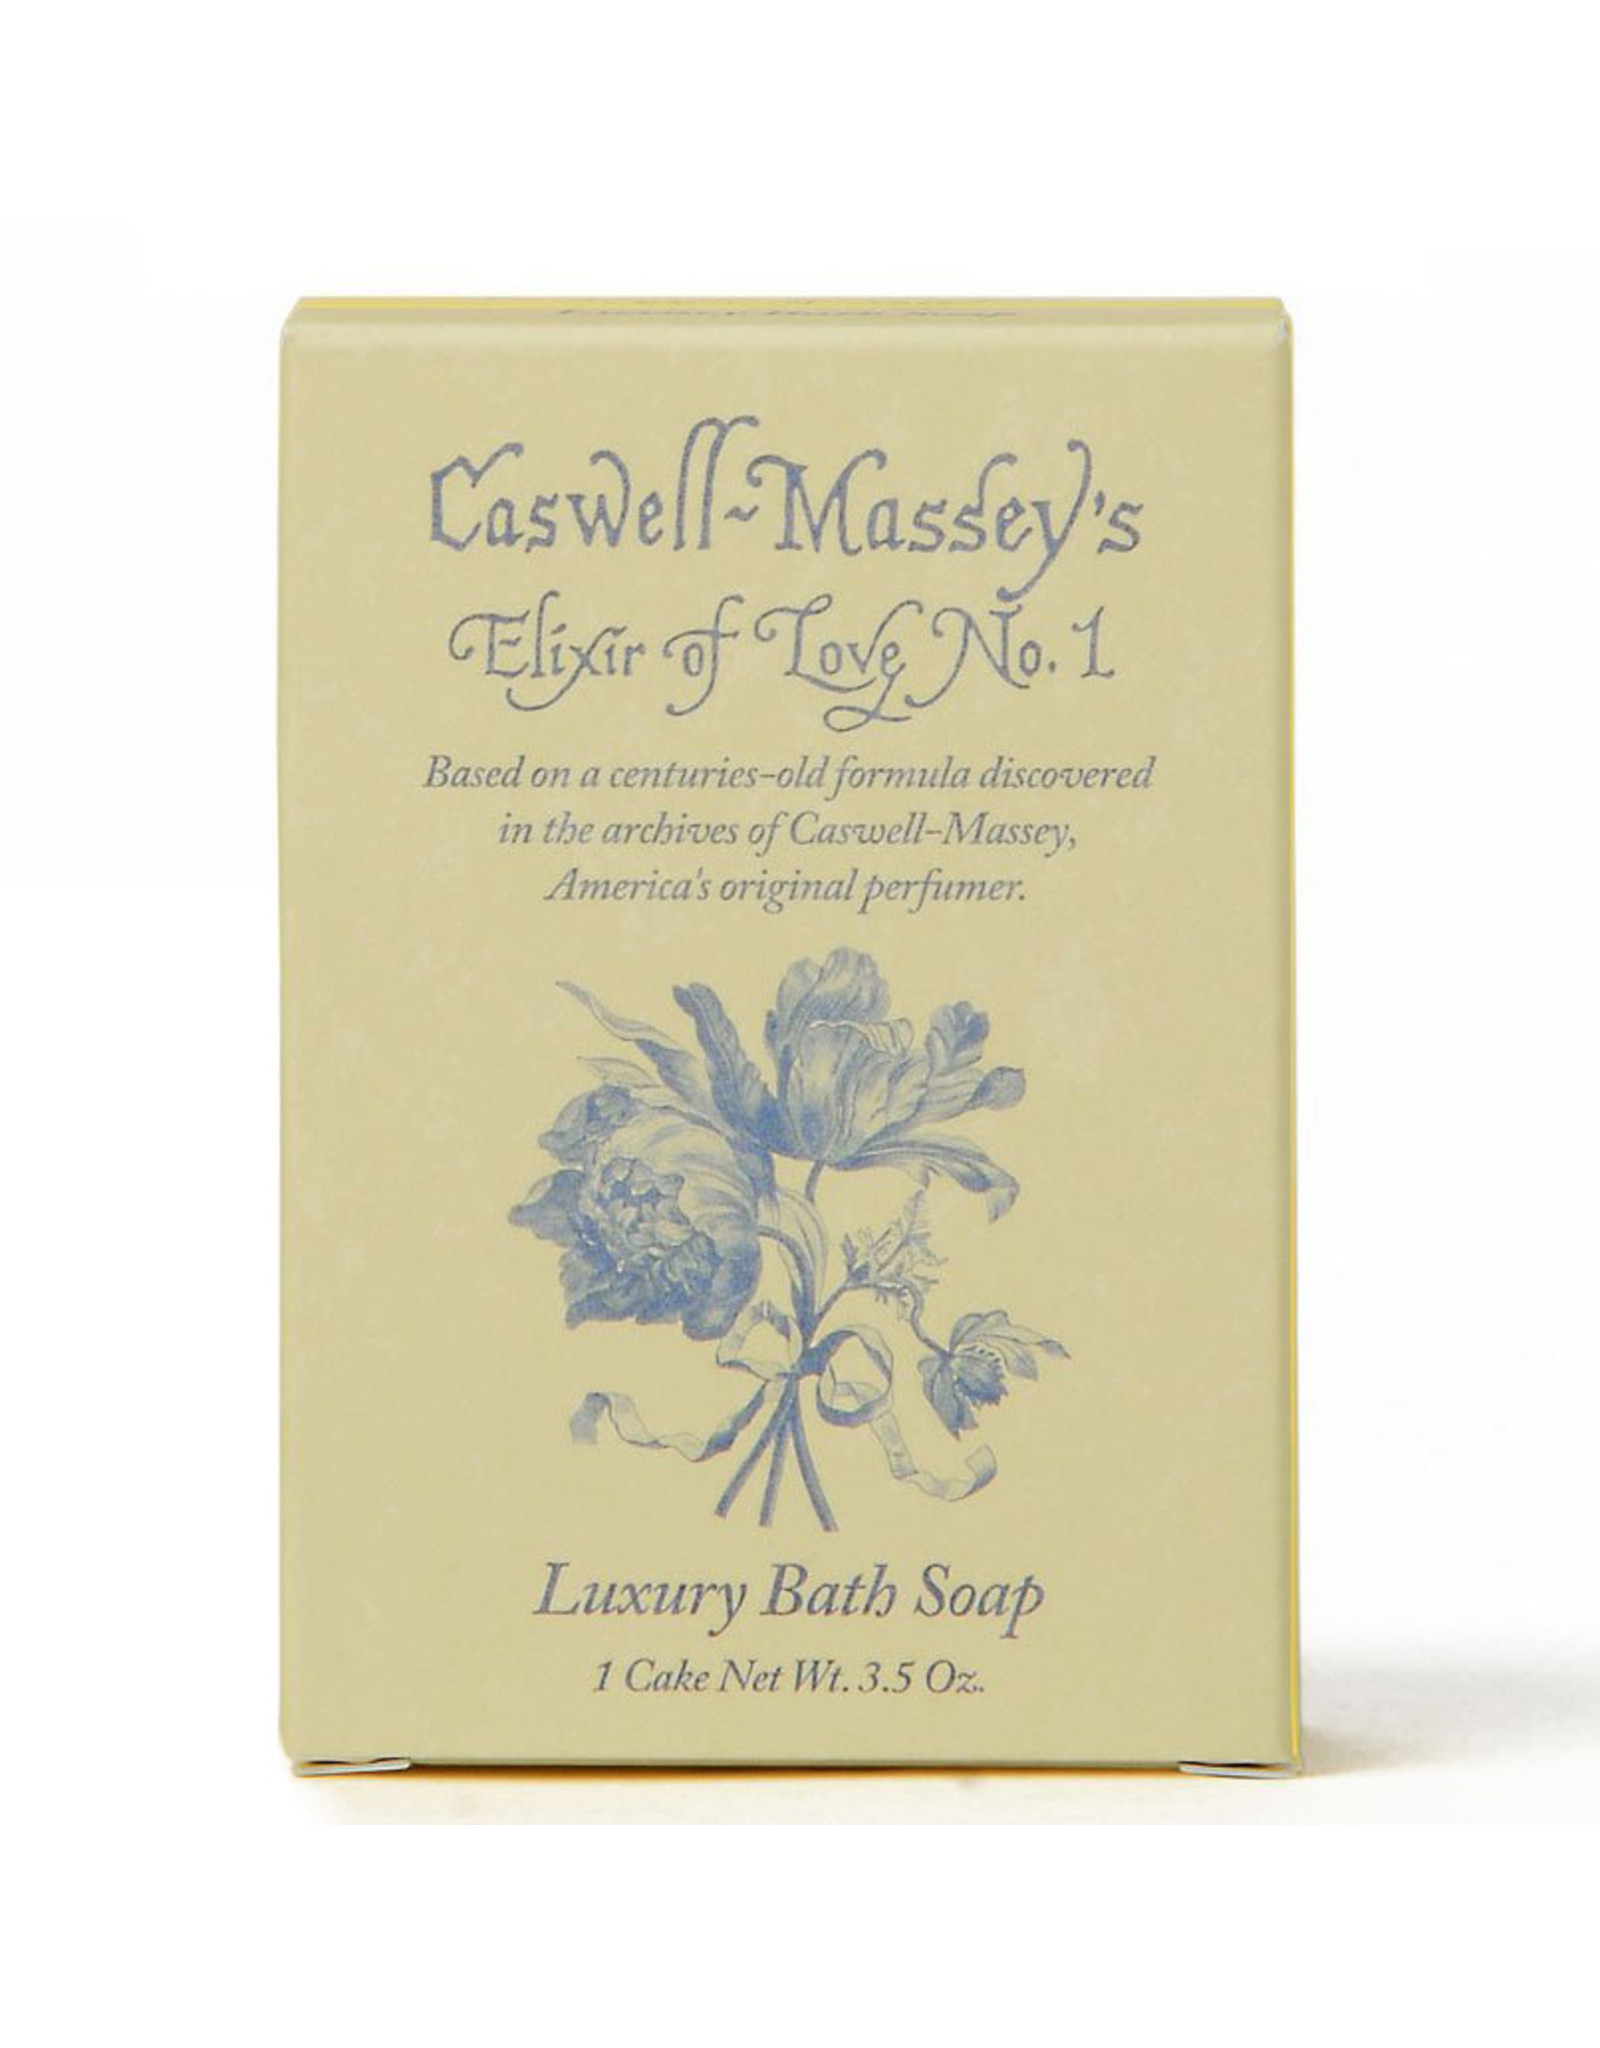 Caswell-Massey Apothecary Elixir of Love No. 1 Bar